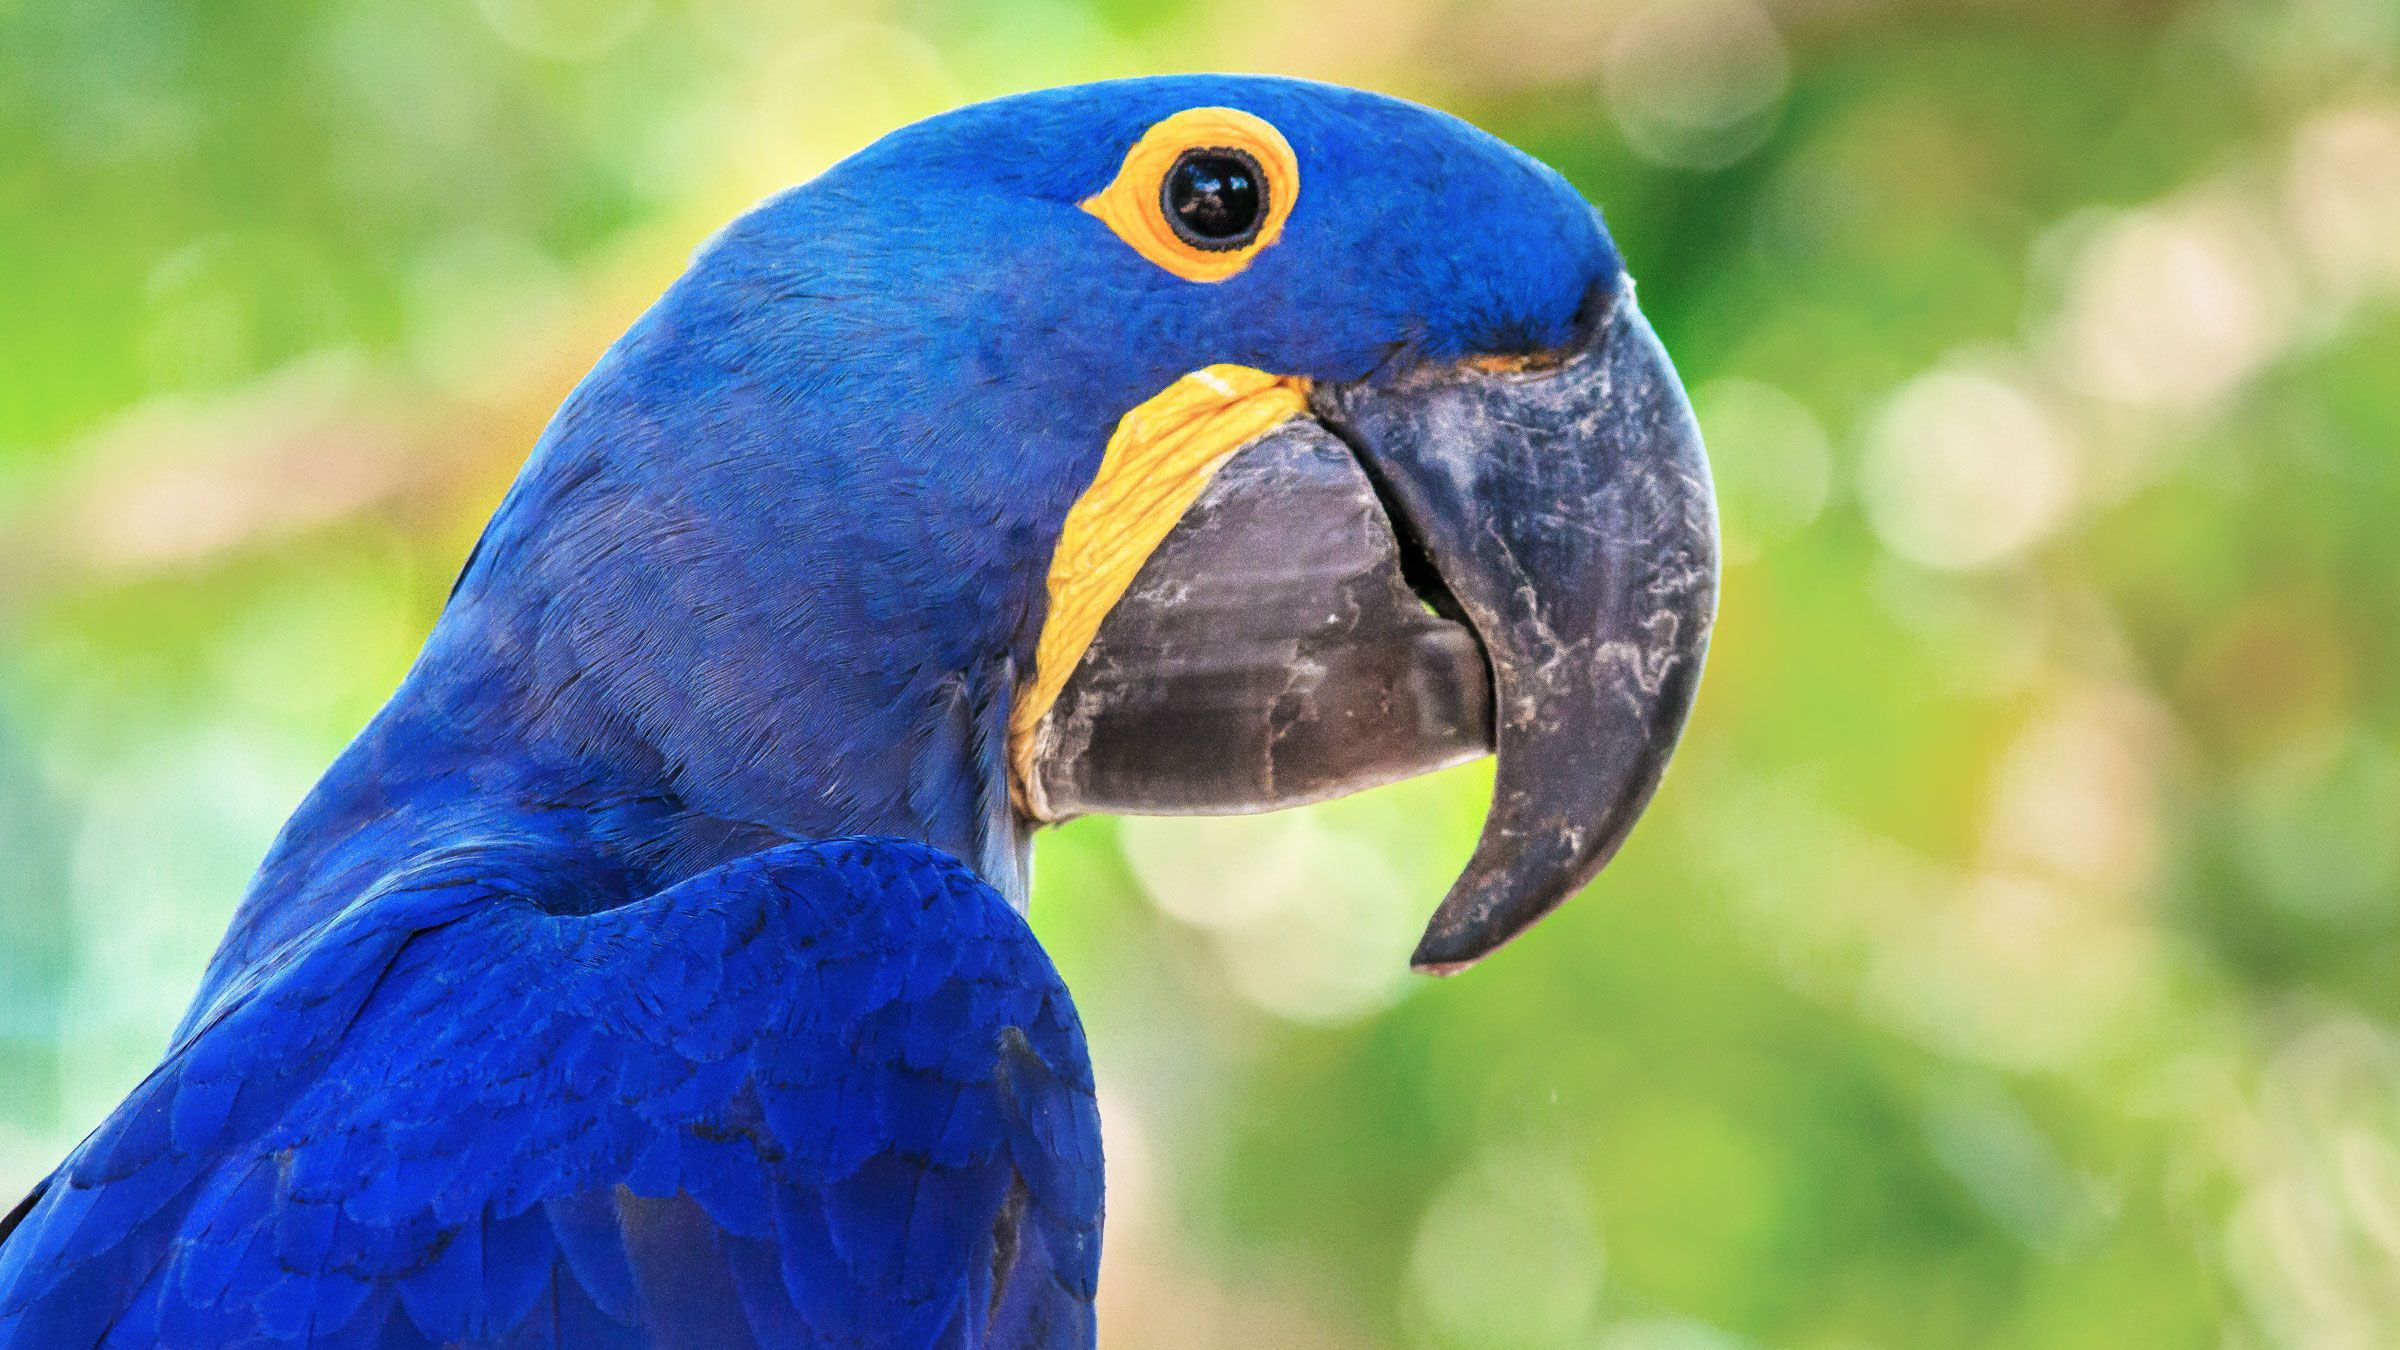 Blue Parrot Background